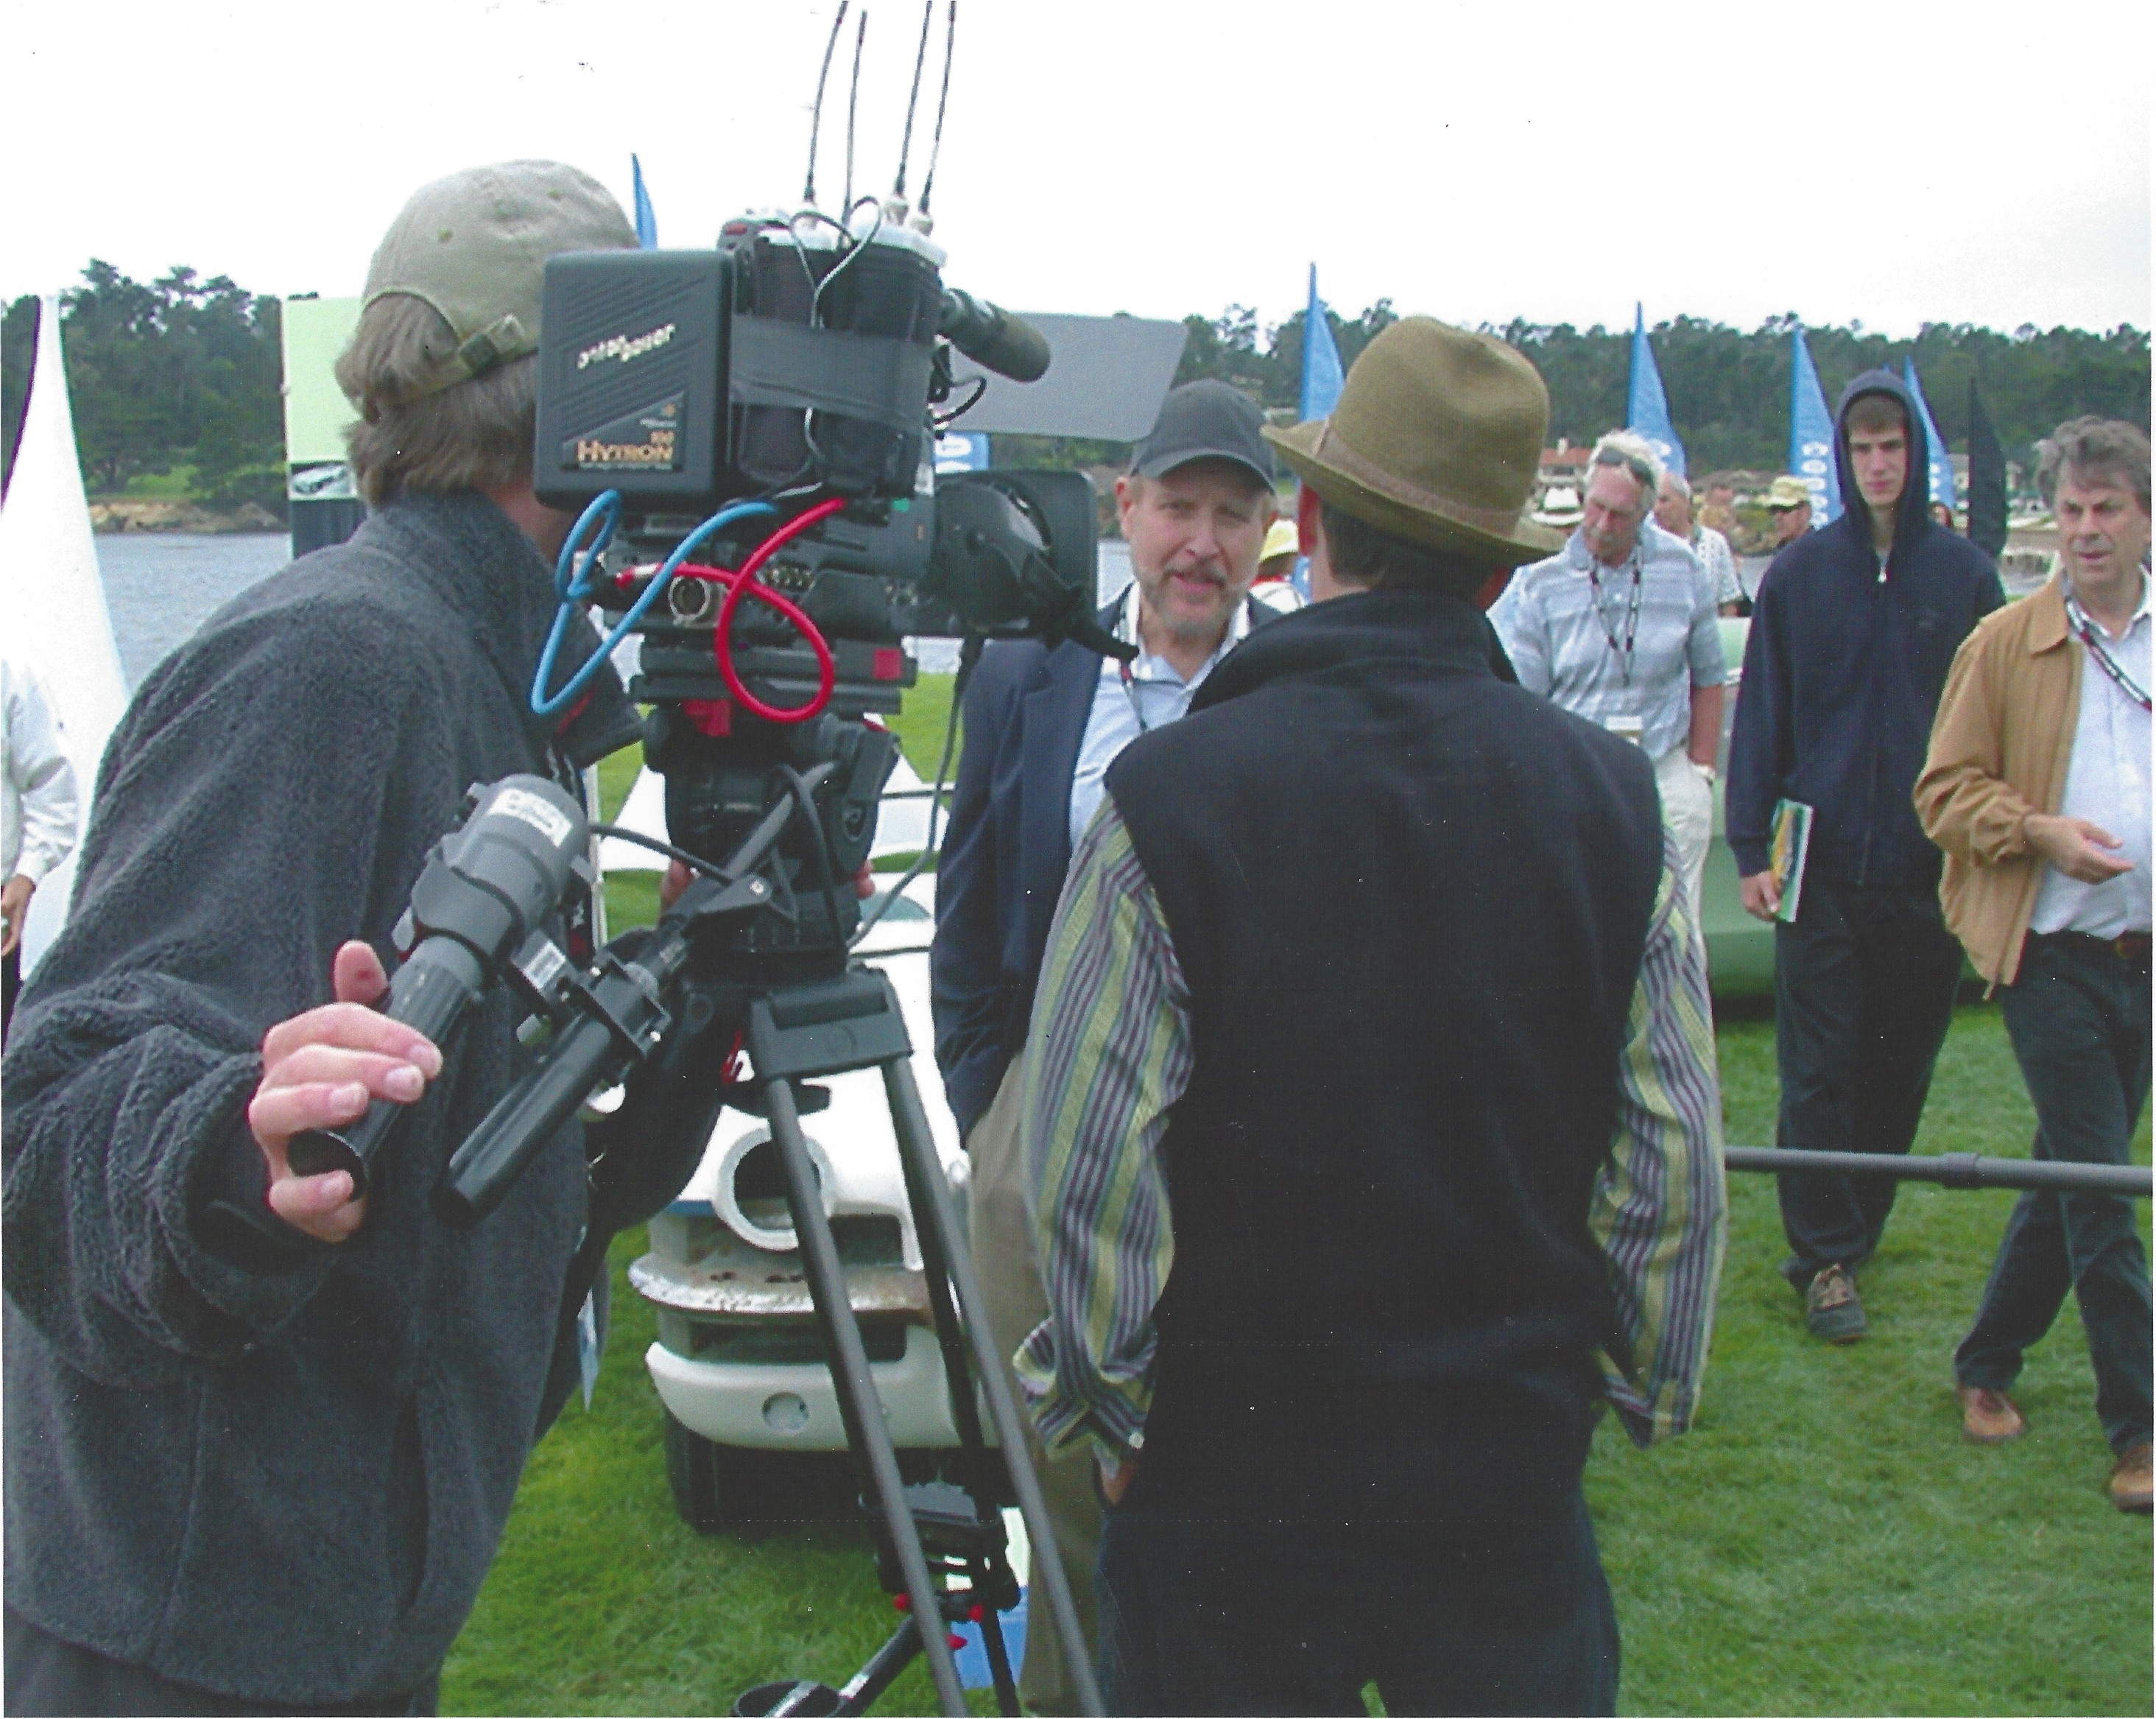 Joe Bortz being interviewed at General Motor's 100th Anniversary atPebble Beach 2008